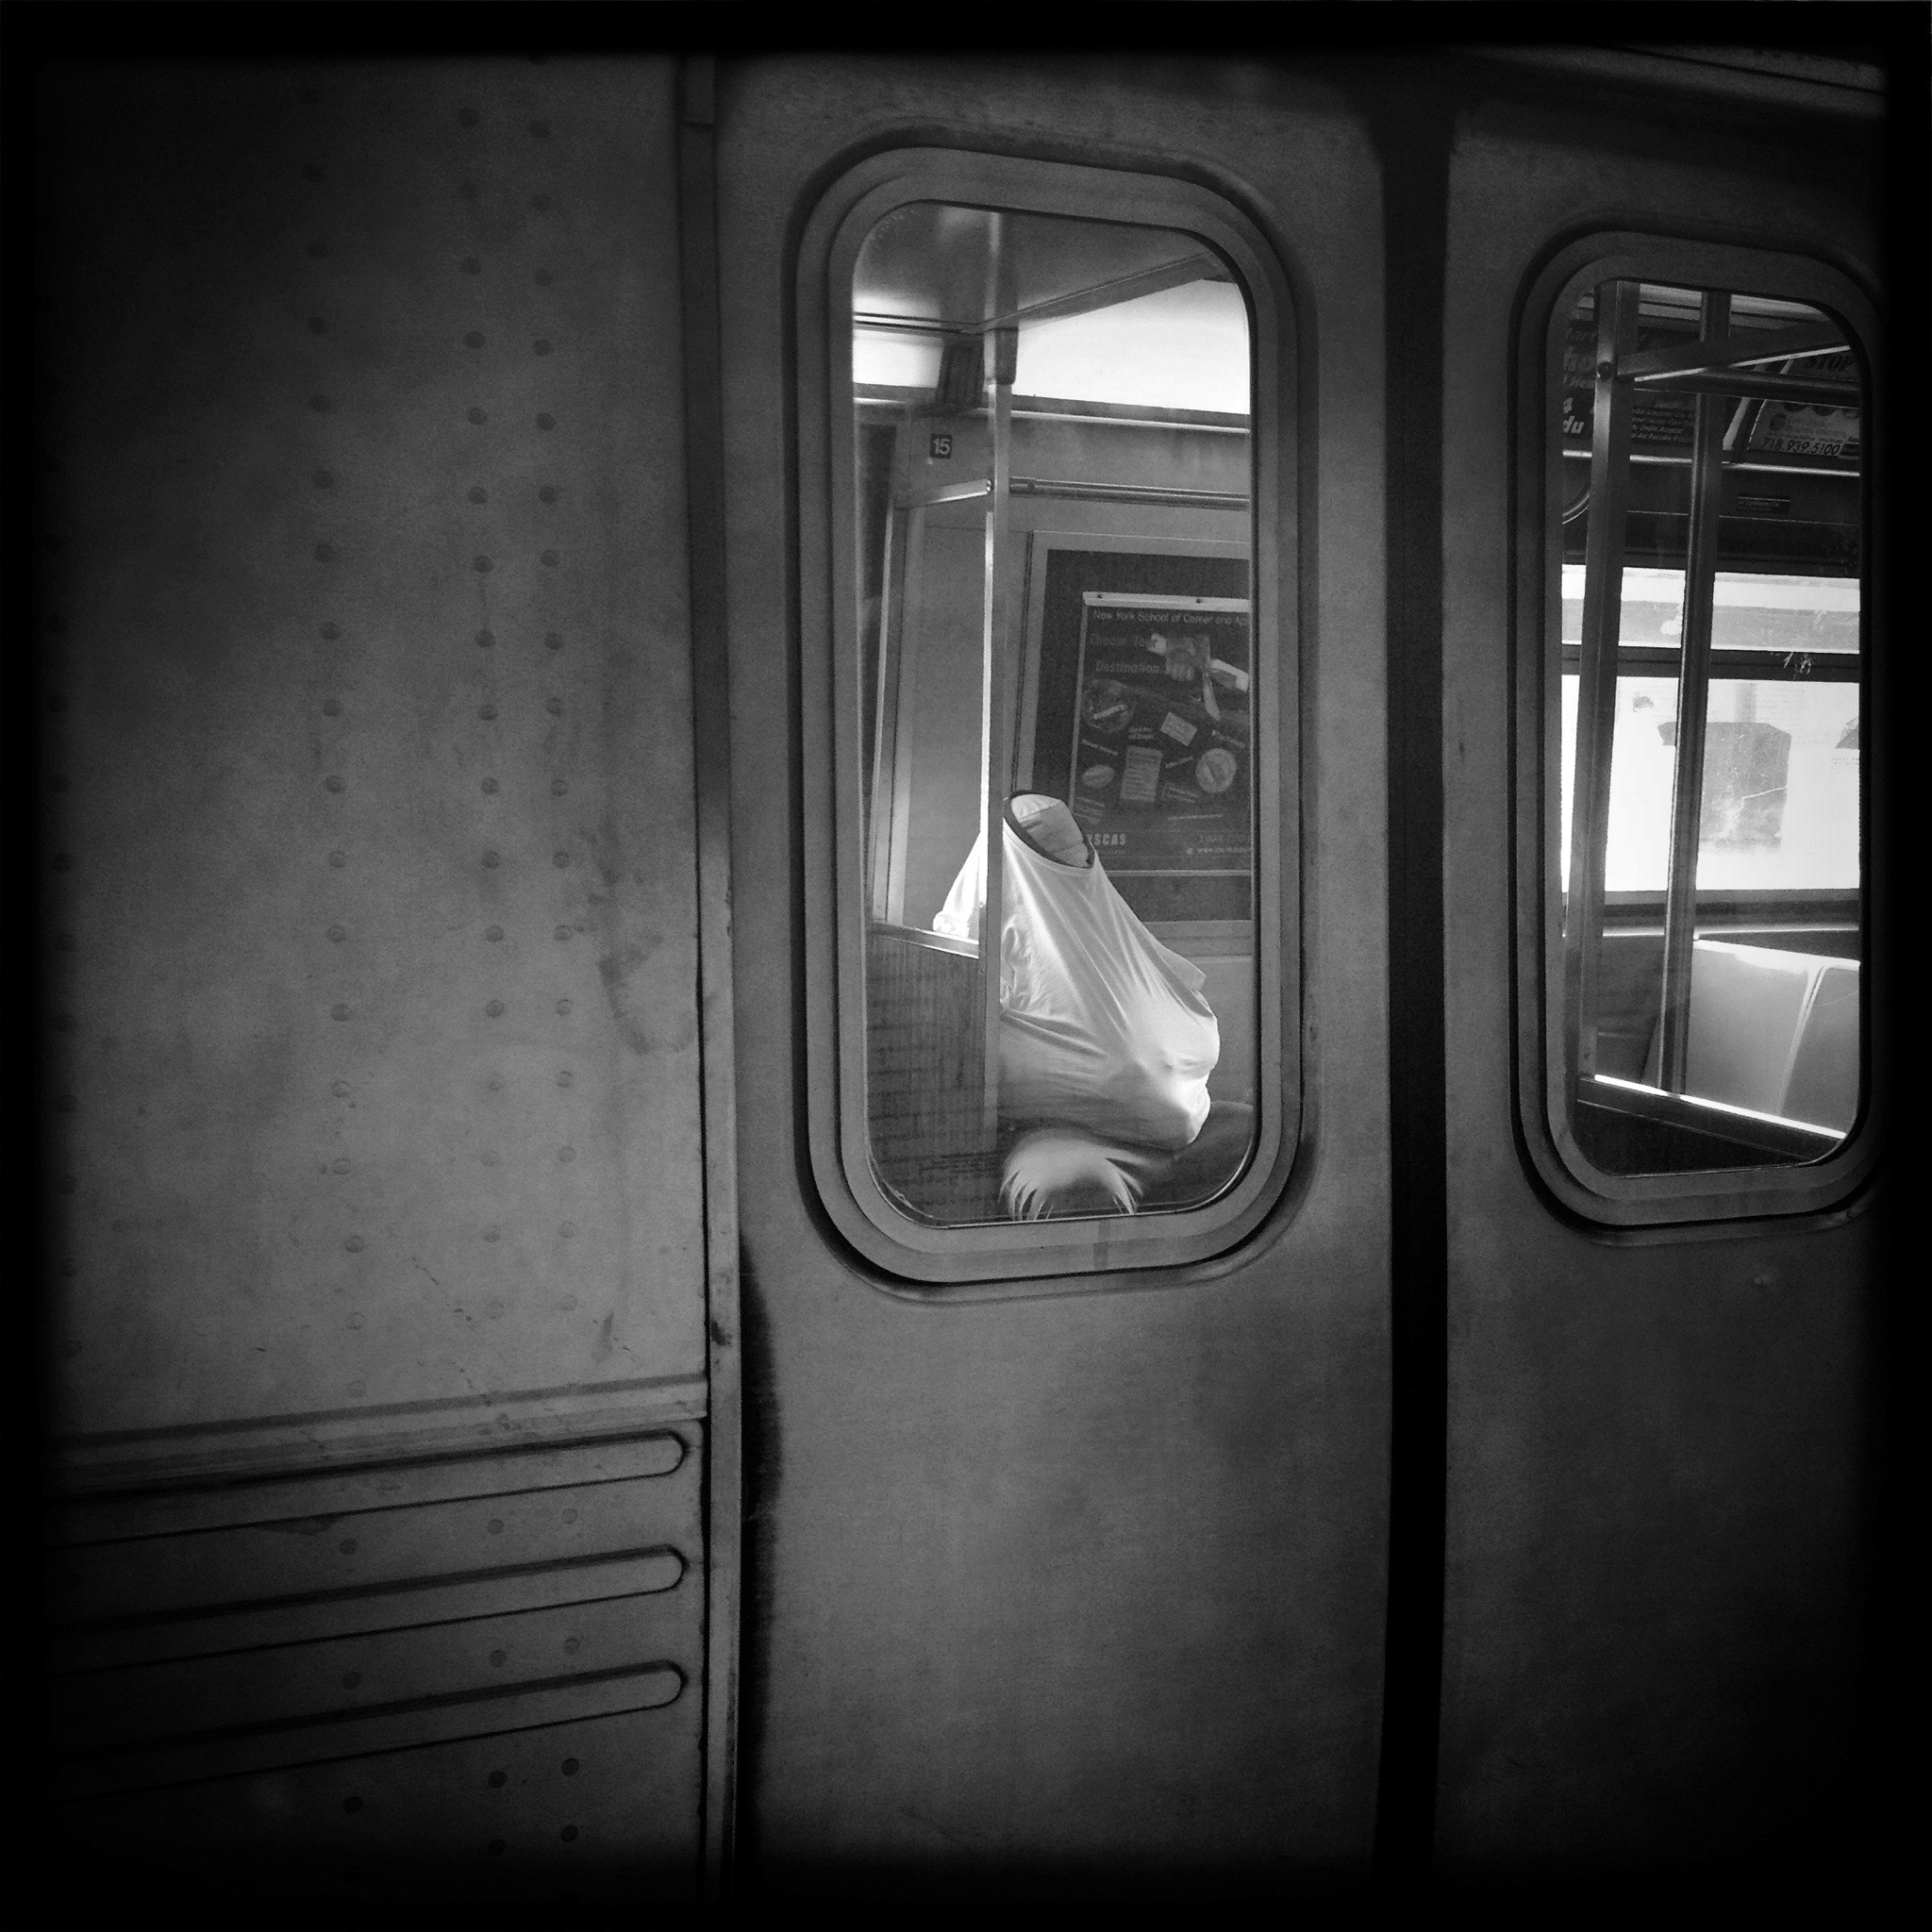 Photograph Ghost Train by Sheldon Serkin on 500px